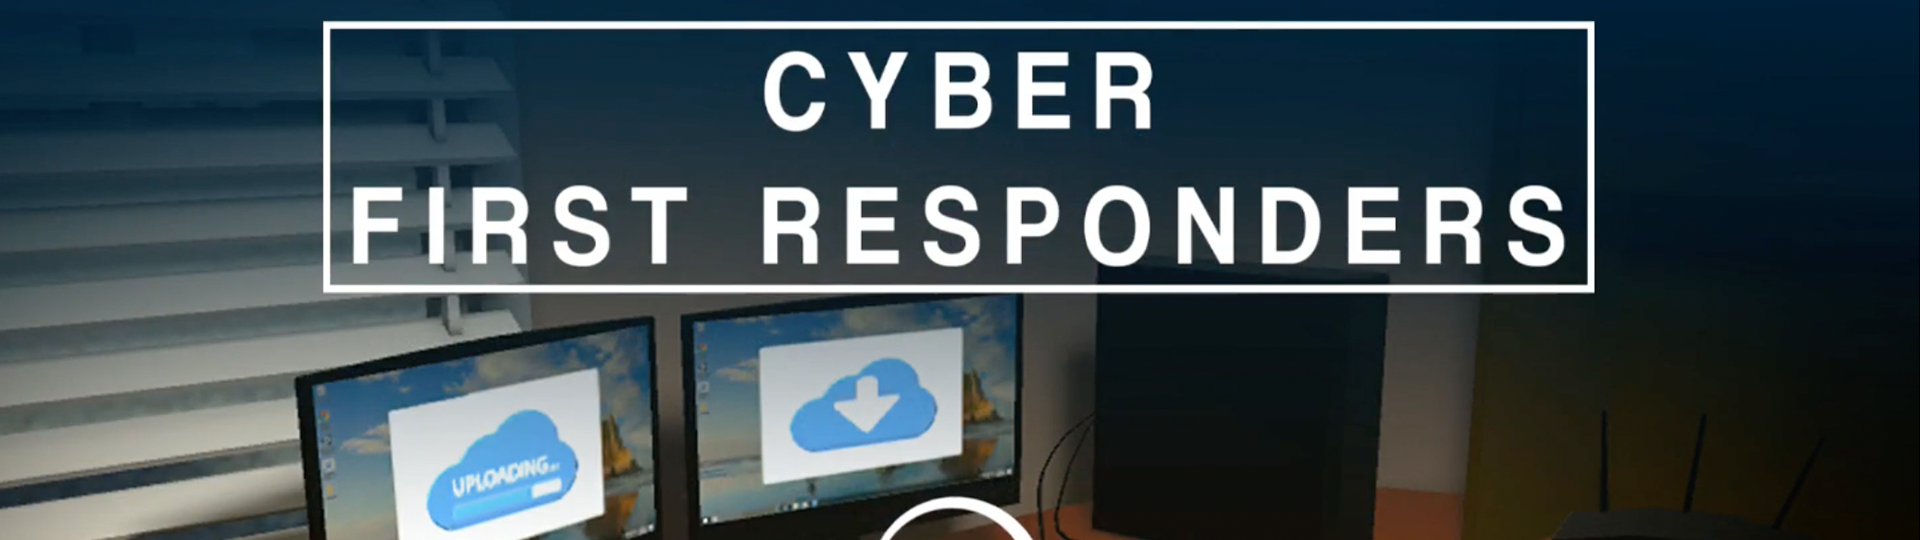 Cyber First Responders Droman Solutions